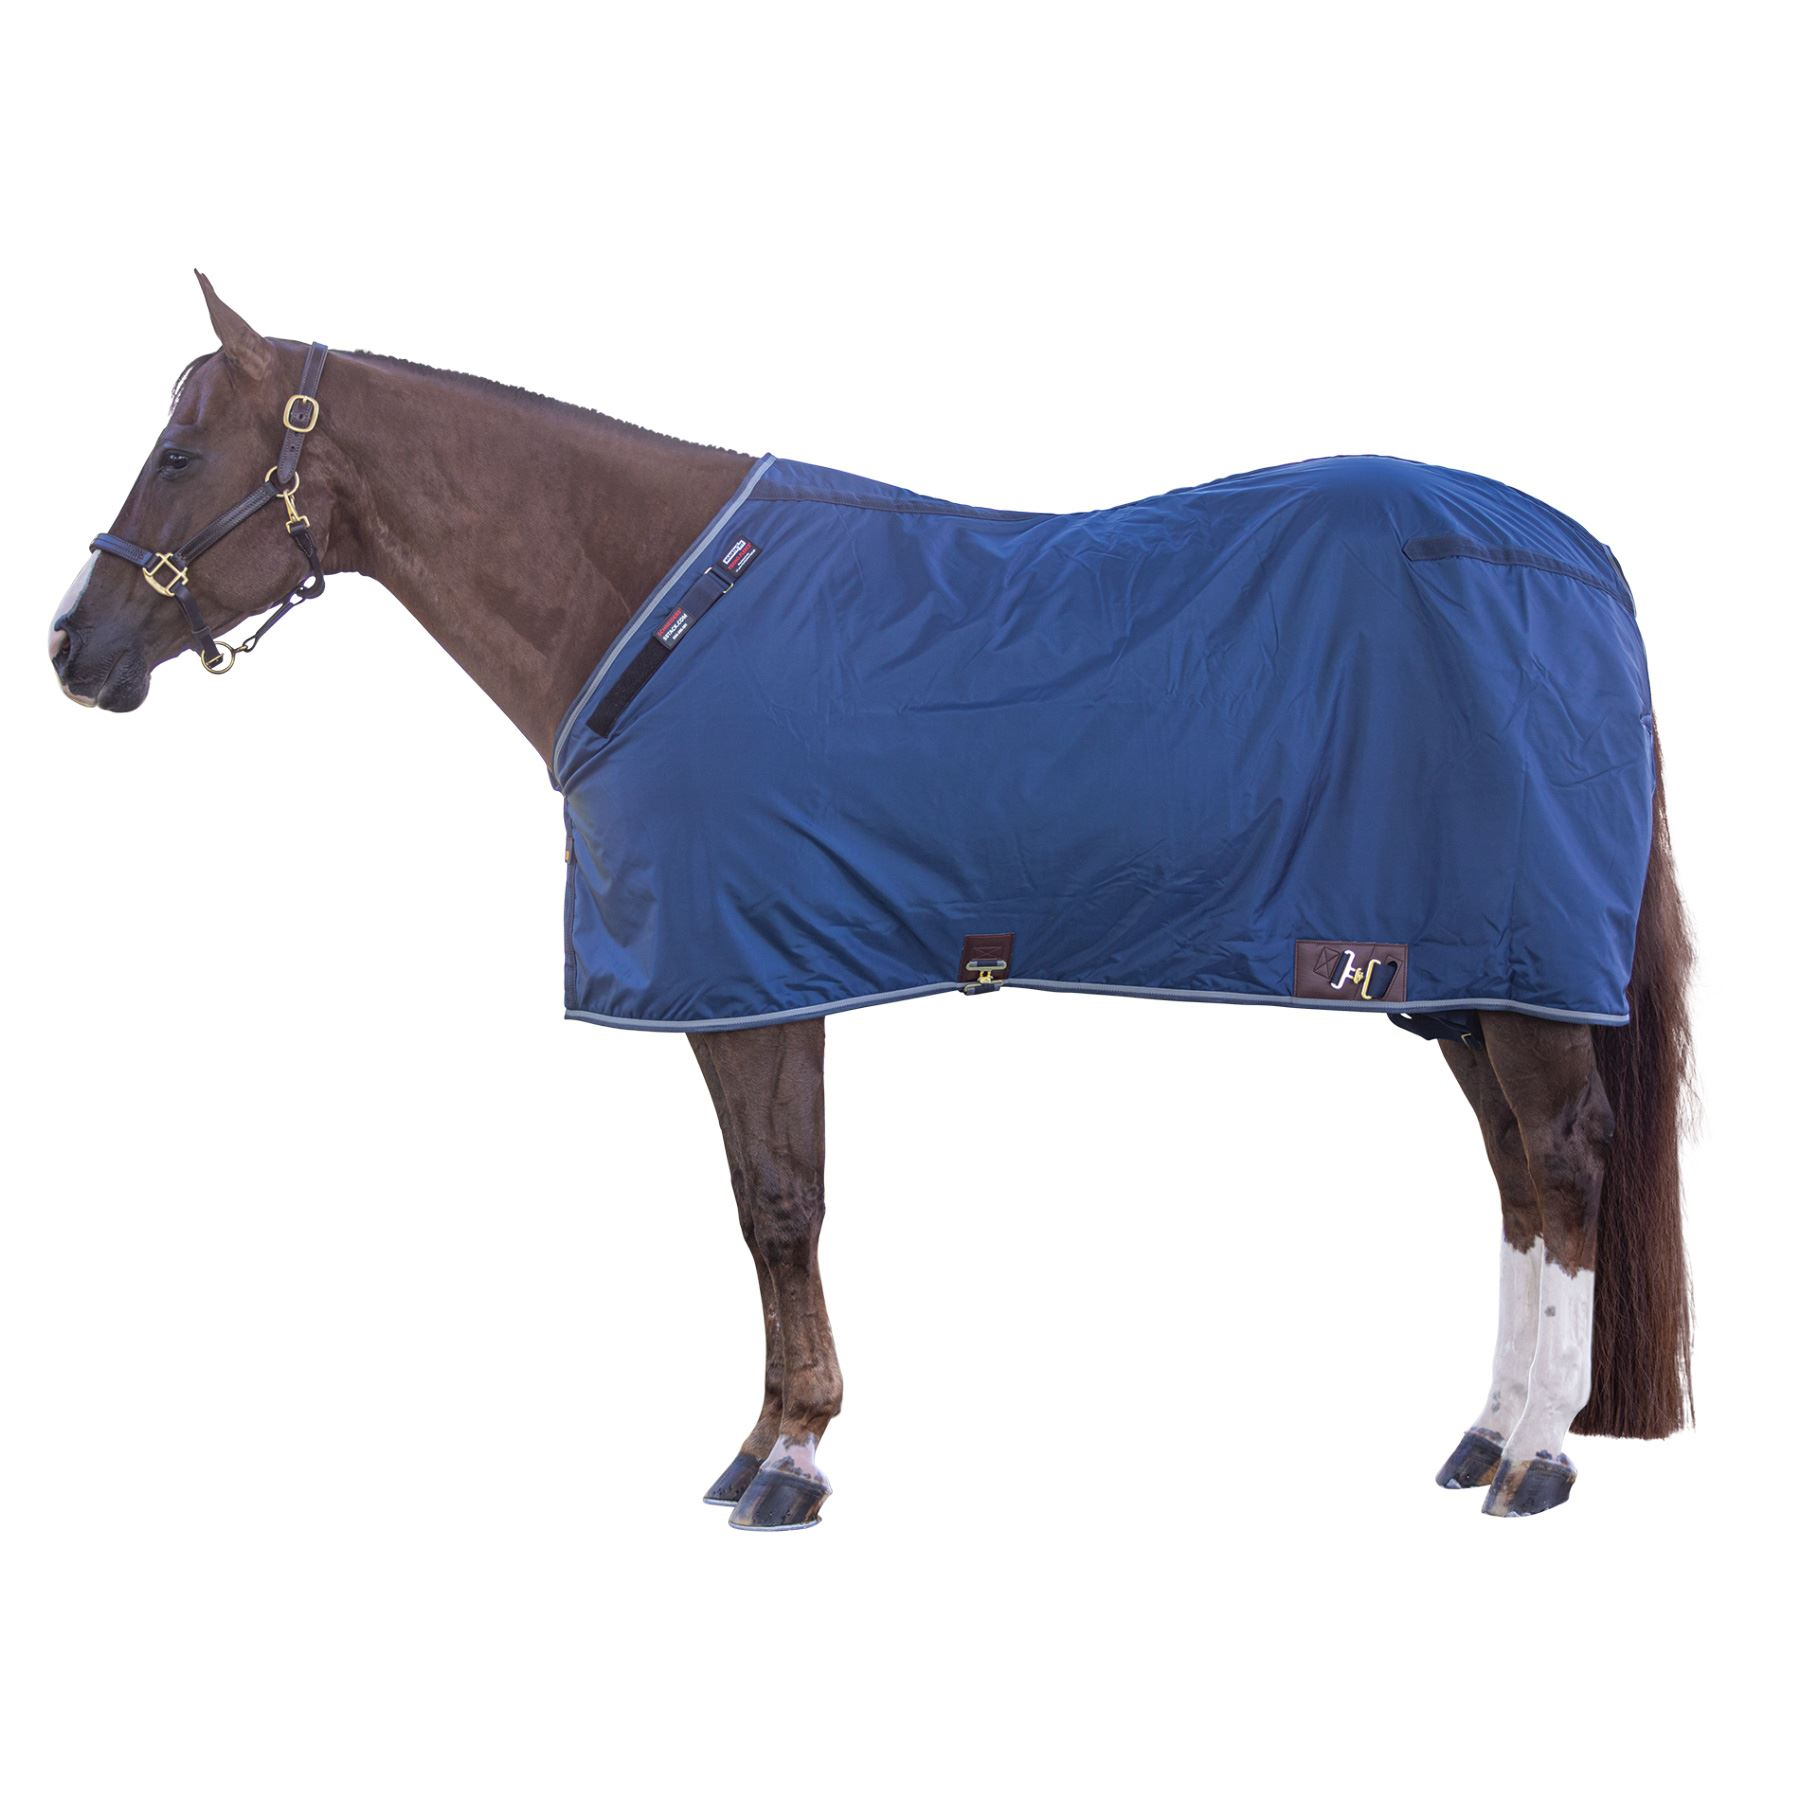 Adjusta-Fit® Dura-Nylon® Tekno-Fleece® V-Free® 3 Season Leg Strap Stable Blanket - Lightweight